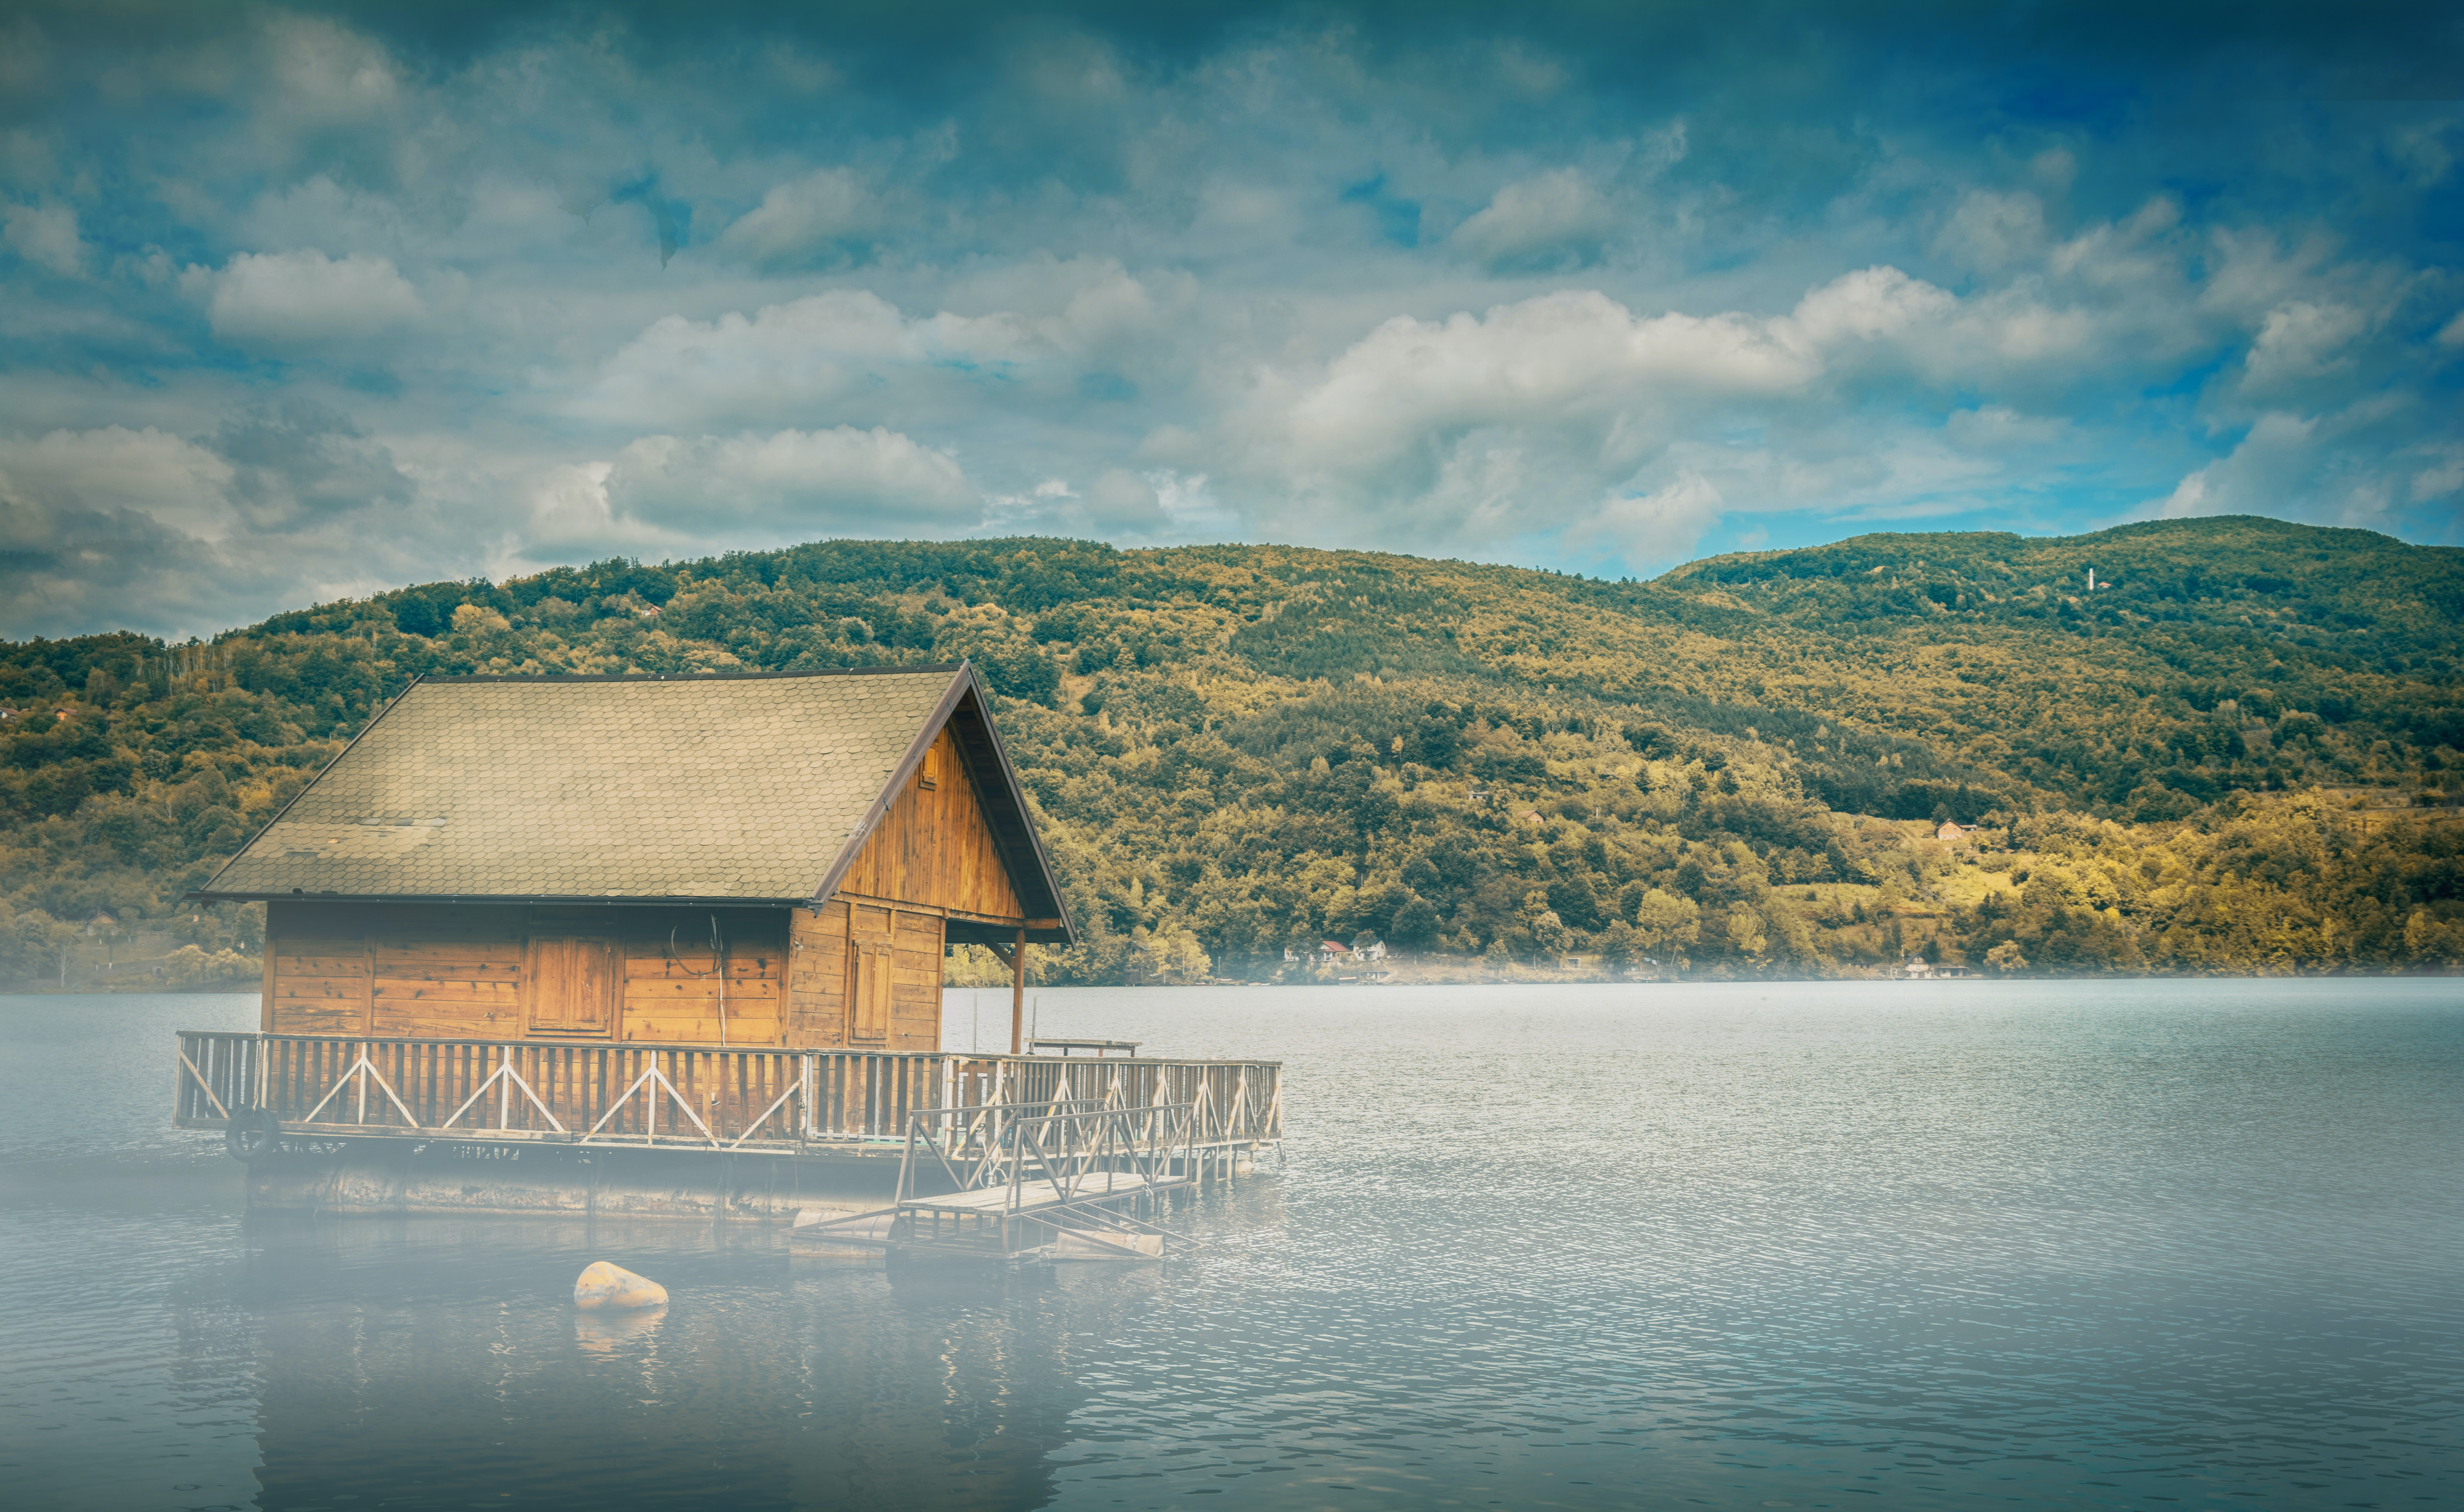 brown wooden floating cottage in middle of body of water with mountain in background